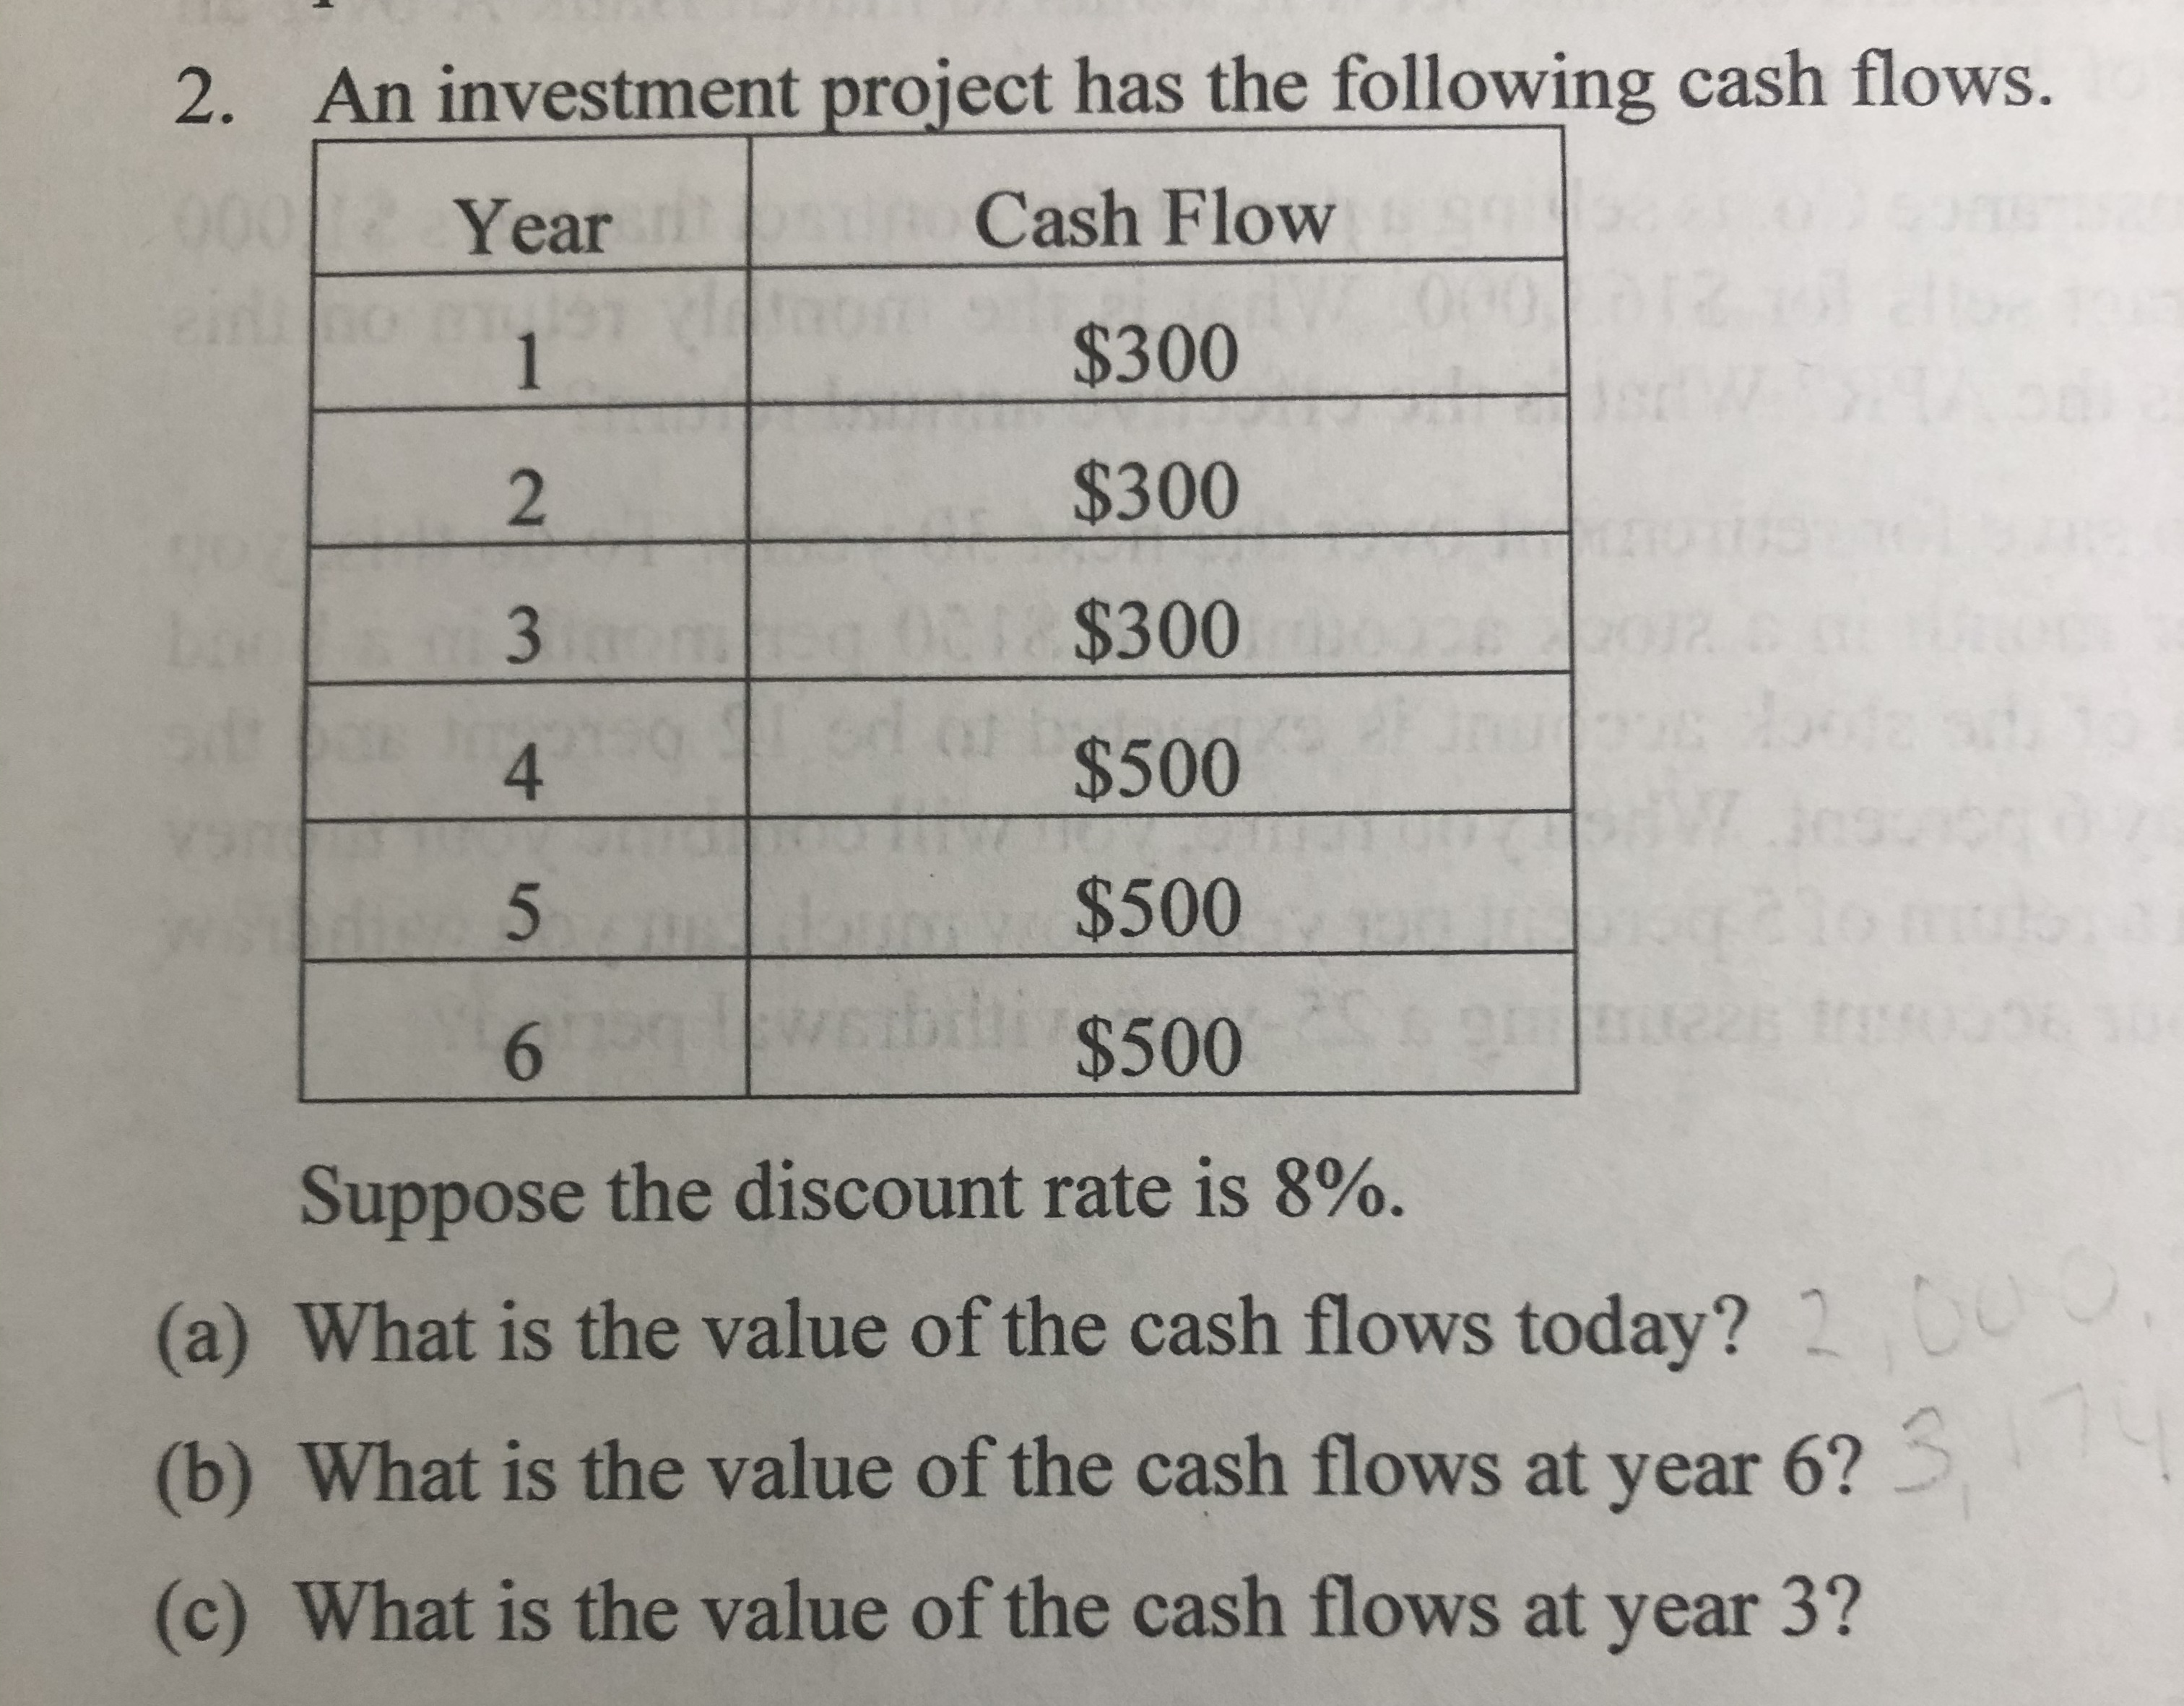 An investment project has the following cash flows. 2. 001 : Cash Flow Year 060 $300 1 $300 2 01 $300 3 4F $500 4 $500 21 bdl $500 6 Suppose the discount rate is 8%. (a) What is the value of the cash flows today? 2 00 14 (b) What is the value of the cash flows at year 6? (c) What is the value of the cash flows at year 3? 3E